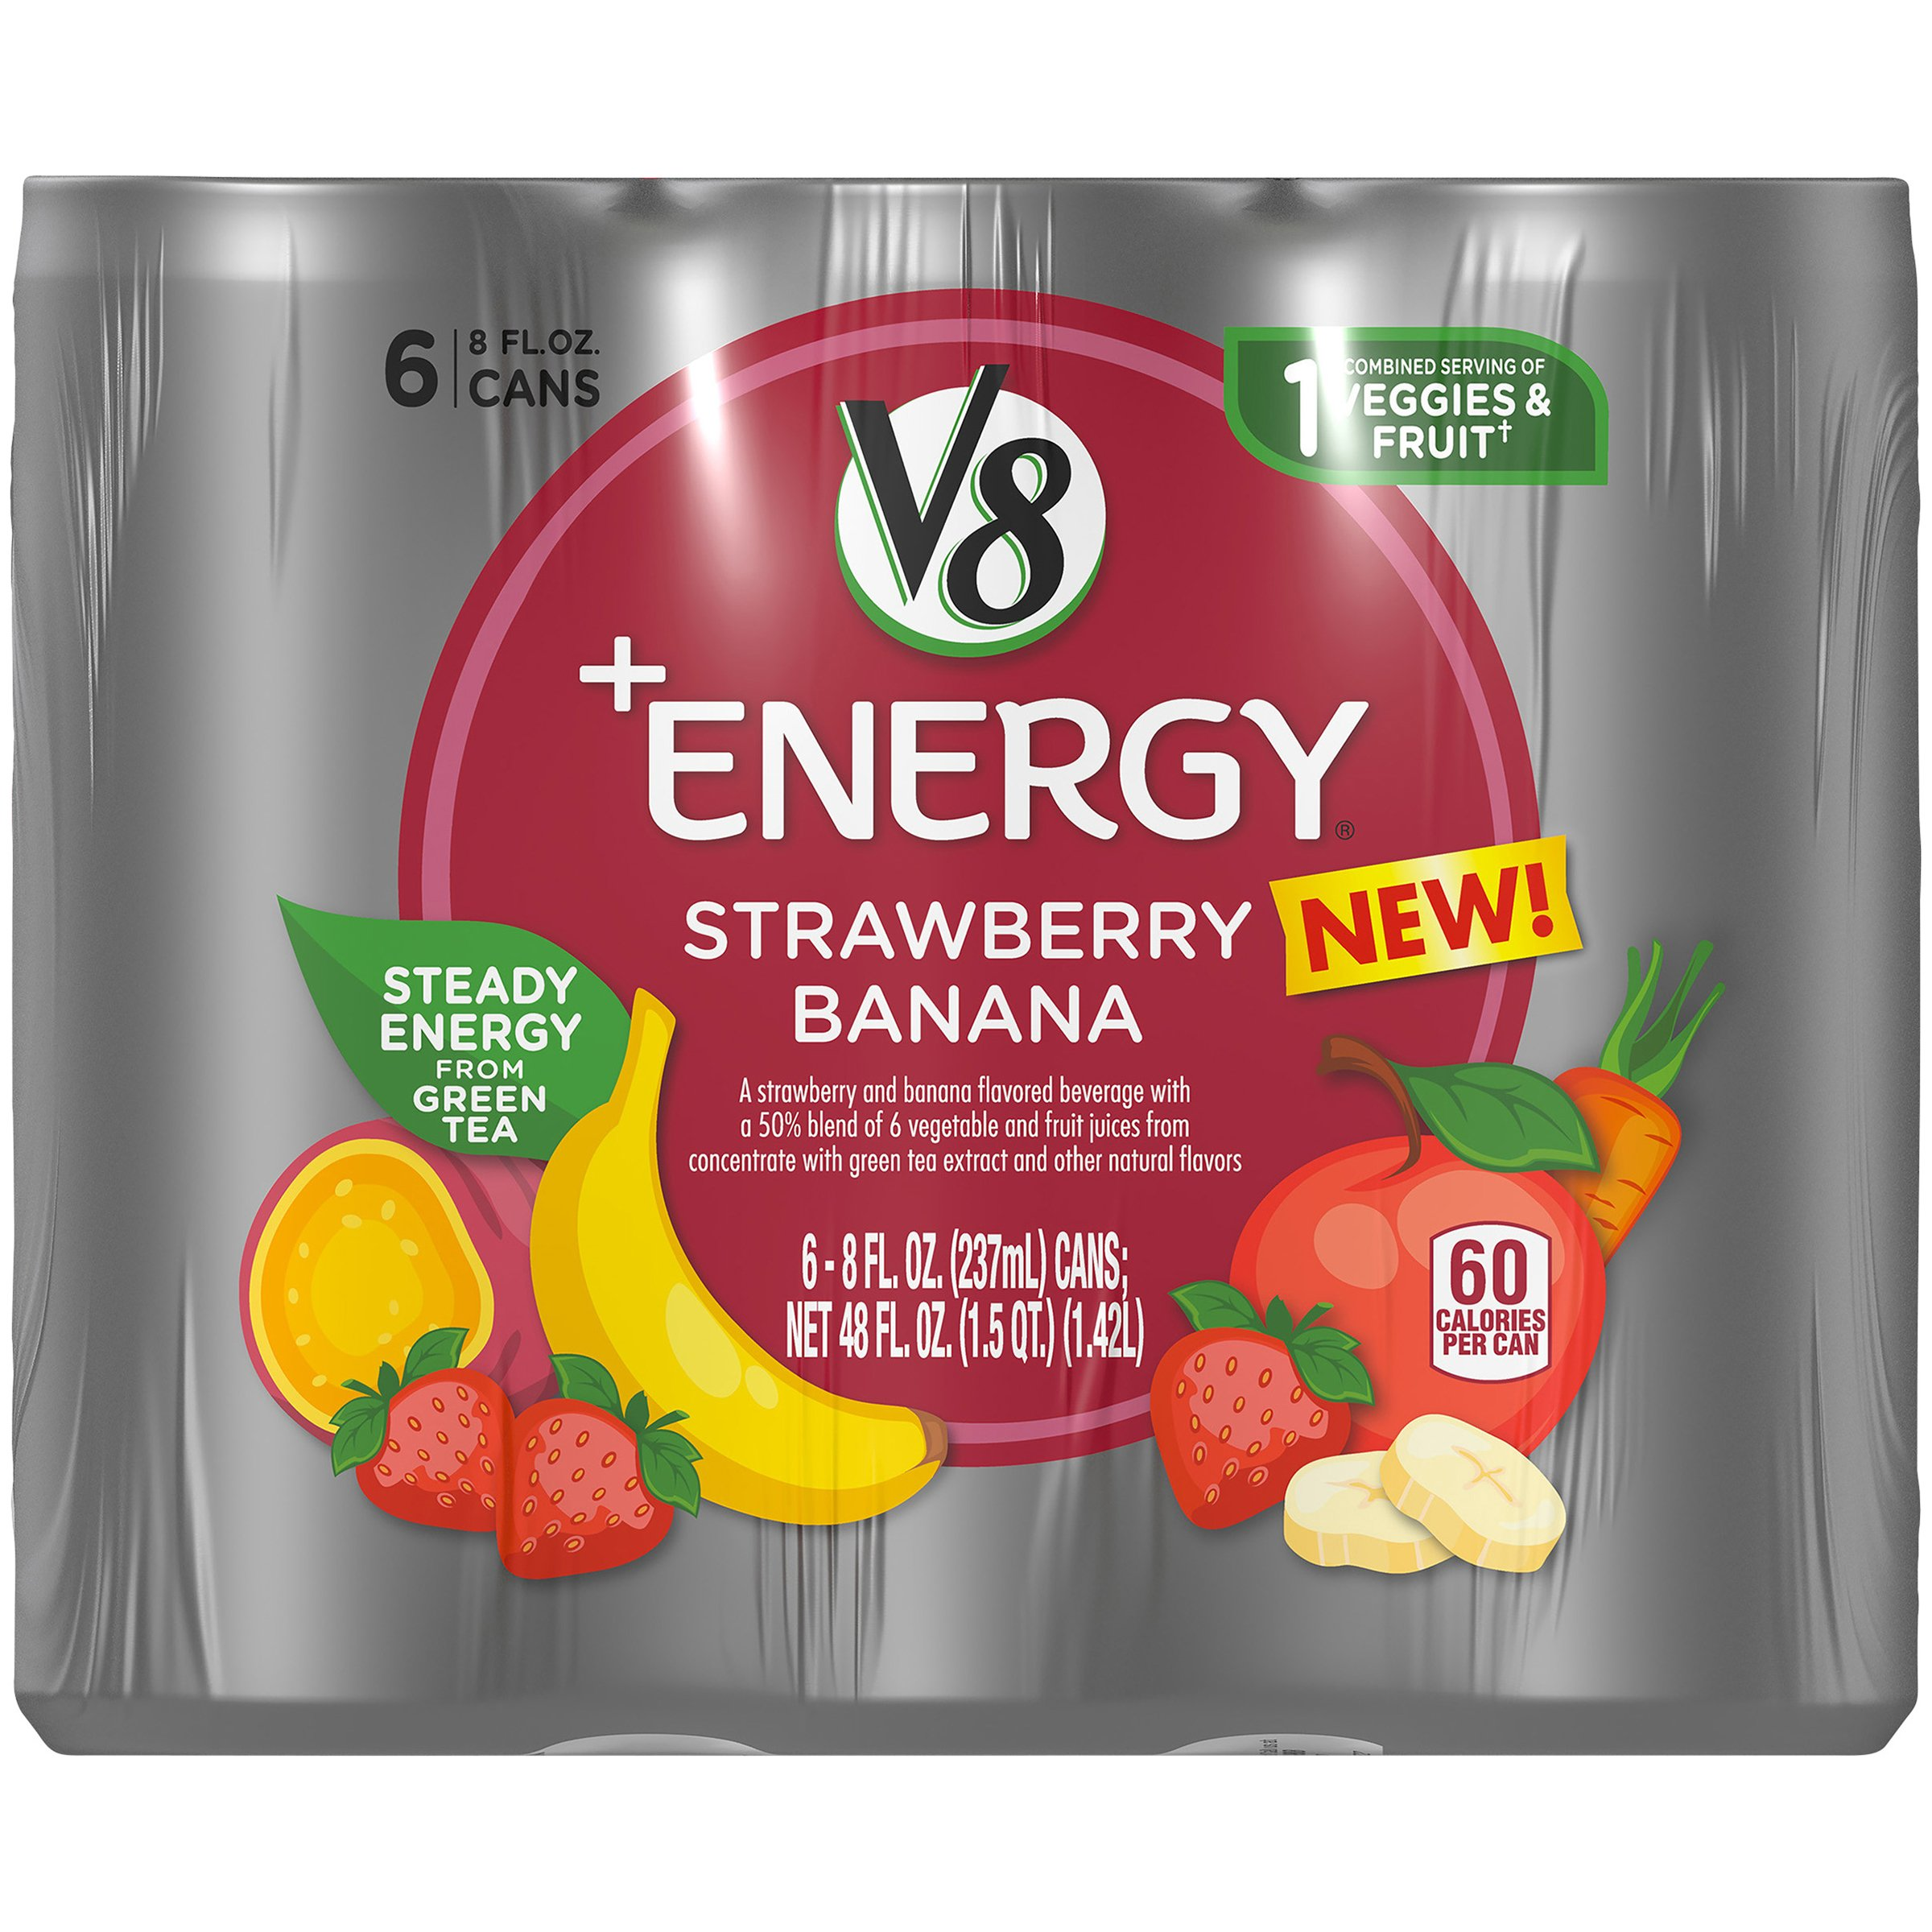 Amazon.com : V8 +Energy, Juice Drink with Green Tea, Strawberry Banana, 8 oz. Can (4 packs of 6, Total of 24) : Grocery & Gourmet Food